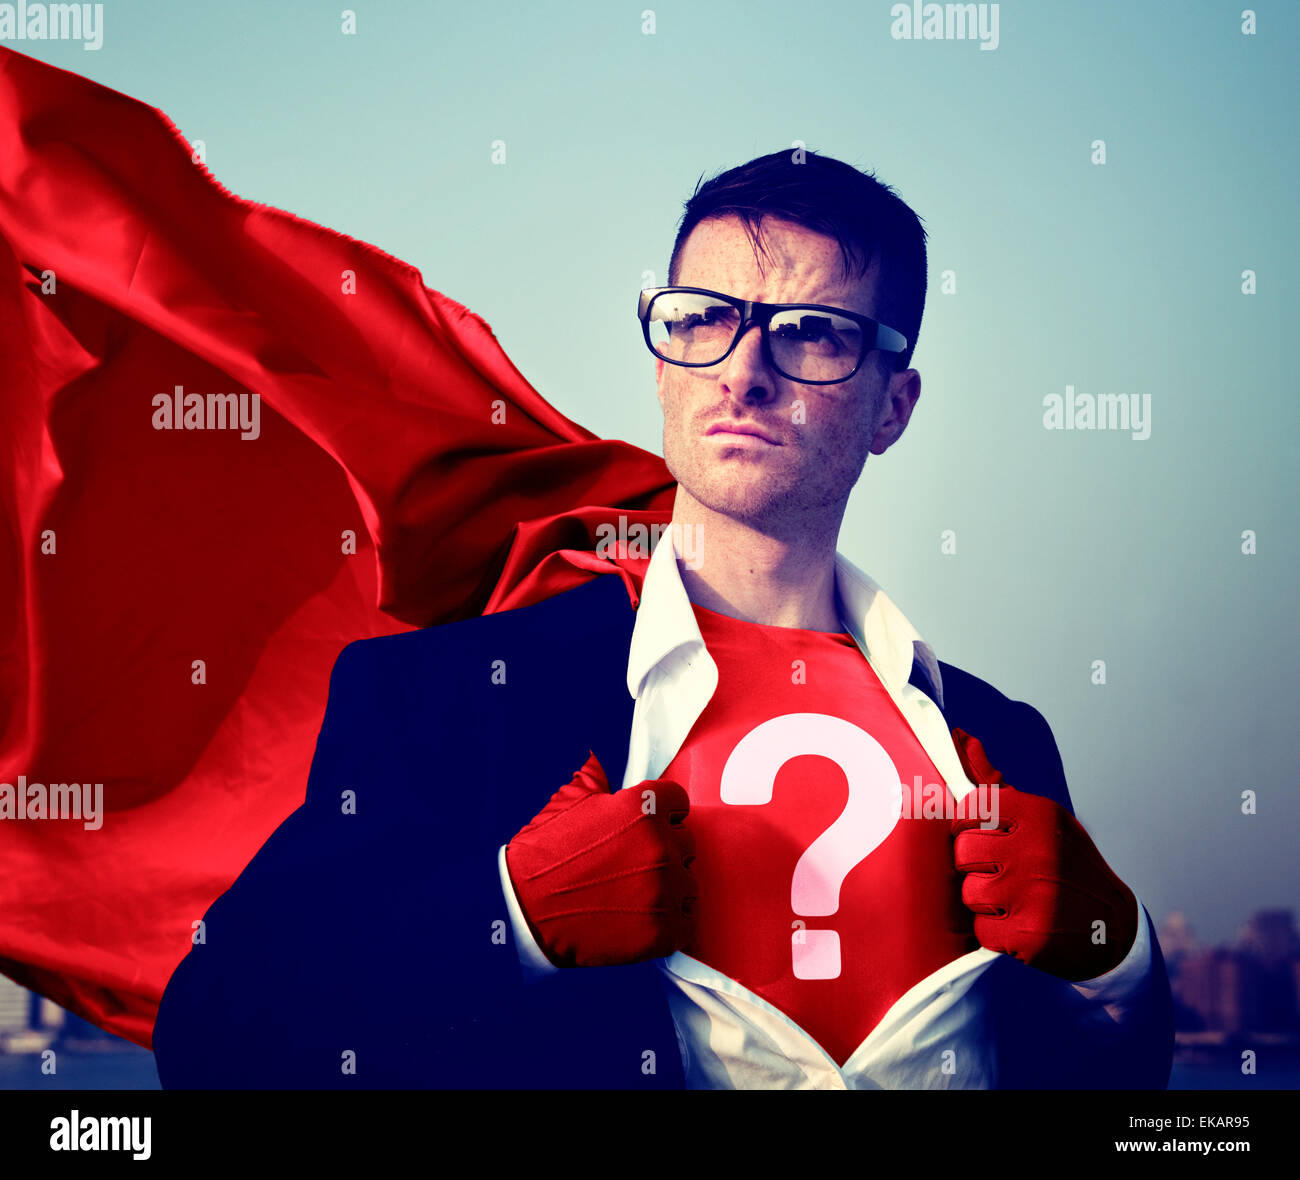 Strong Superhero Businessman Question Mark Concepts - Stock Image